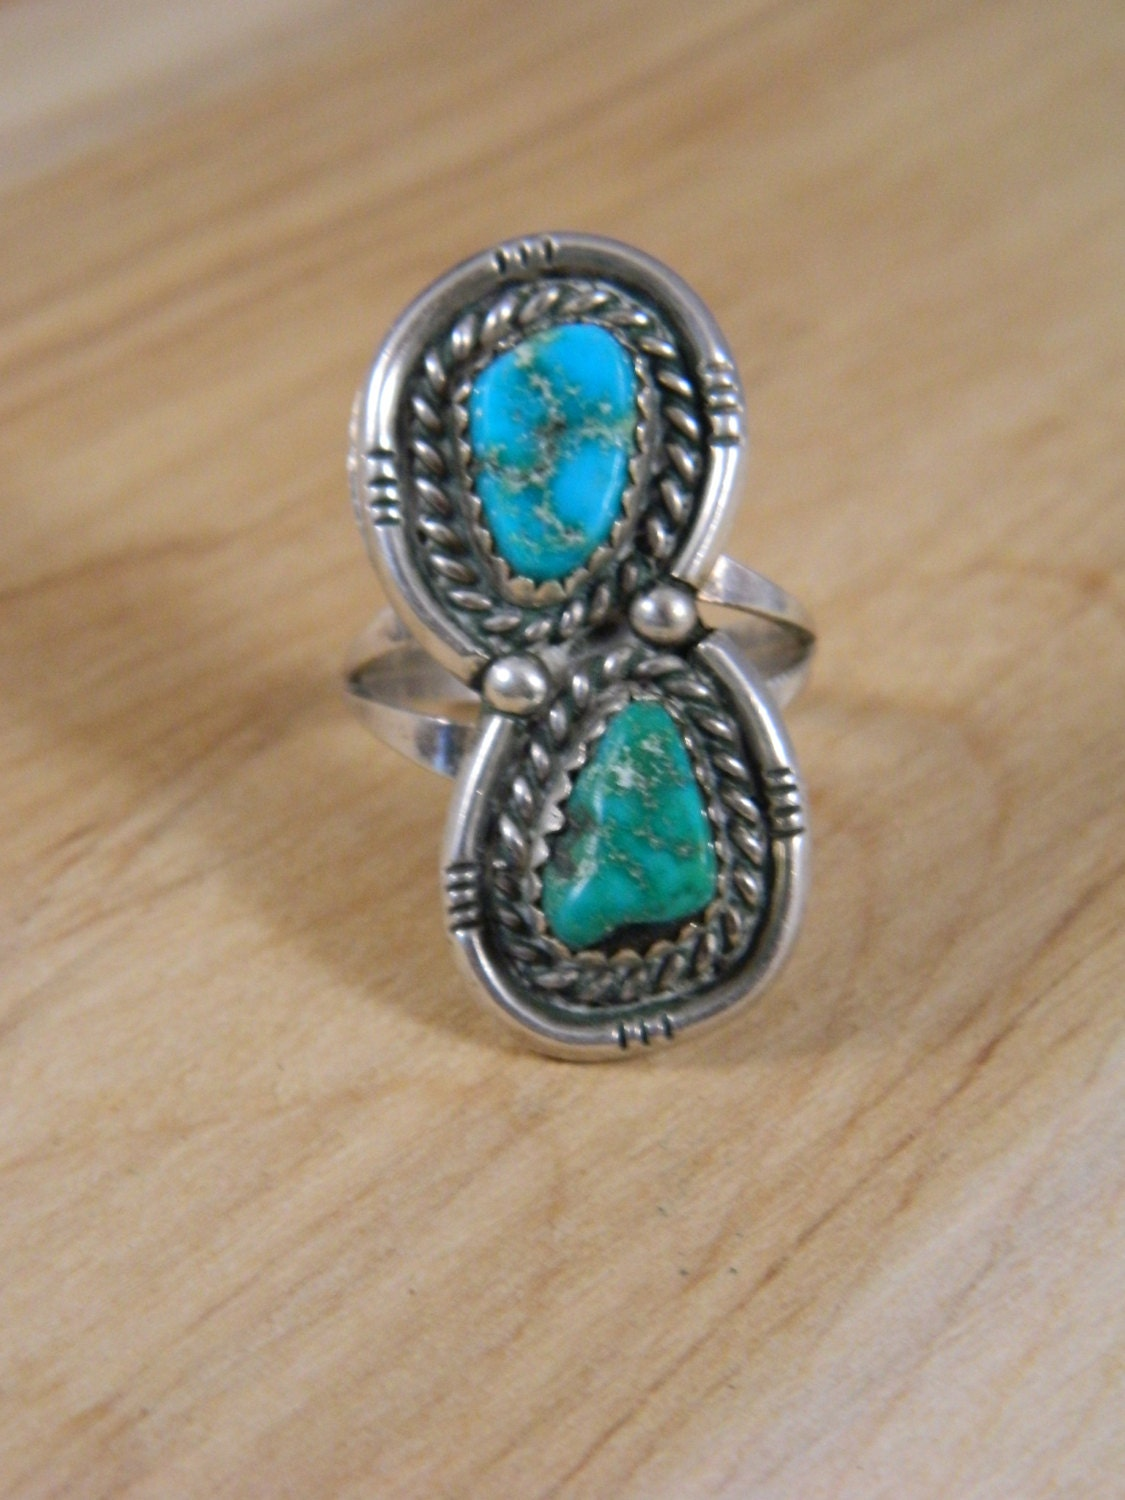 10 Kitchen And Home Decor Items Every 20 Something Needs: Vintage Turquoise Double Stone Ring / Sterling Silver Green